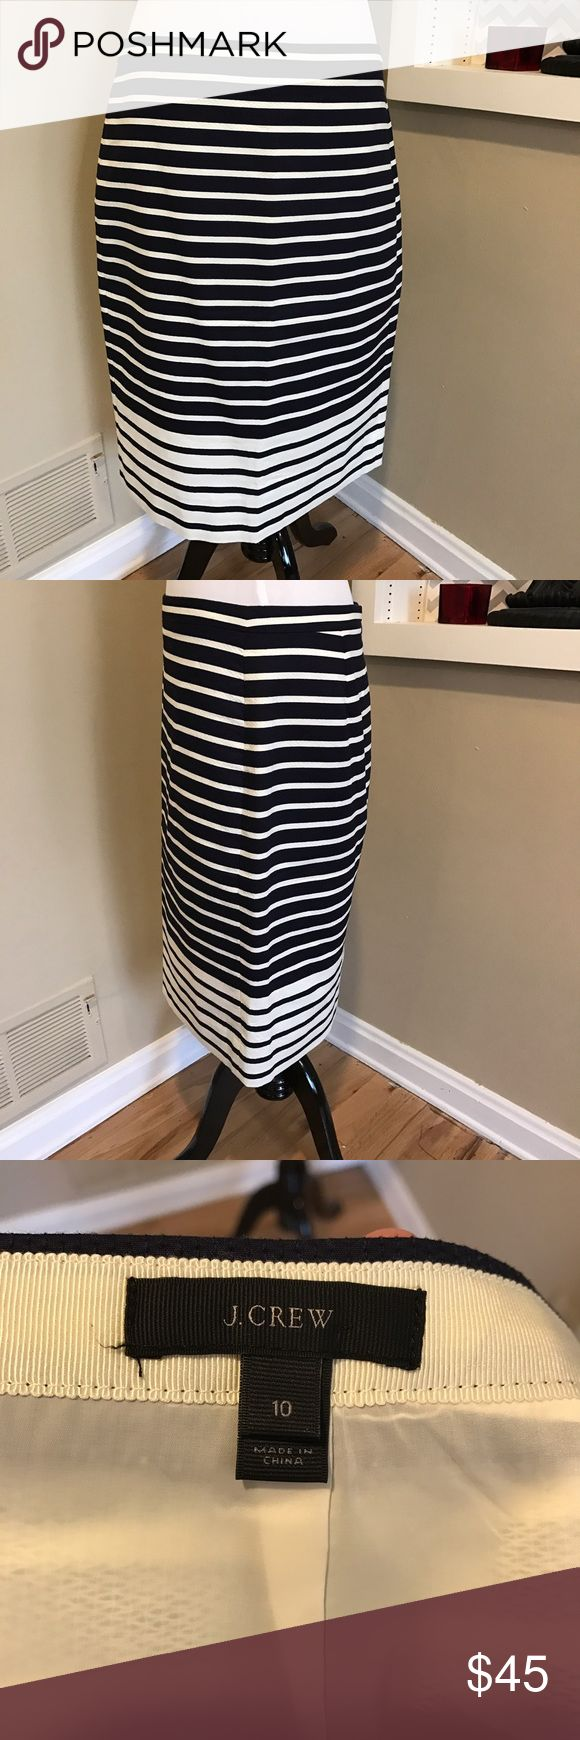 Jcrew striped pencil skirt Navy and white striped pencil skirt. Great fit and fun pattern. No tags but never worn. J. Crew Skirts Pencil